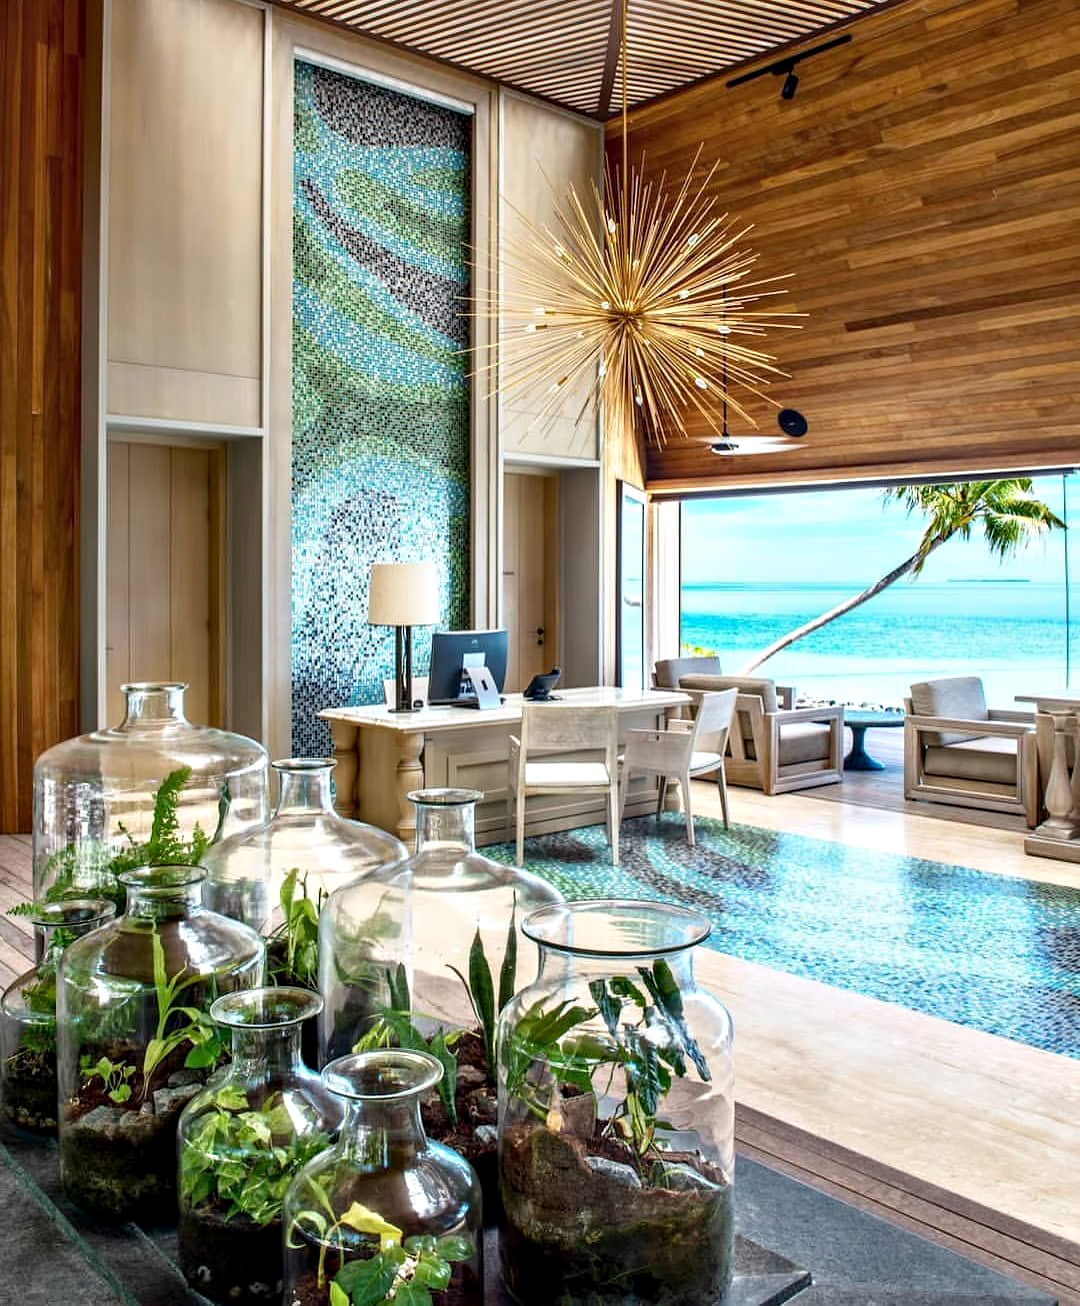 The St. Regis Maldives Vommuli Luxury Resort - Dhaalu Atoll, Maldives - Reception